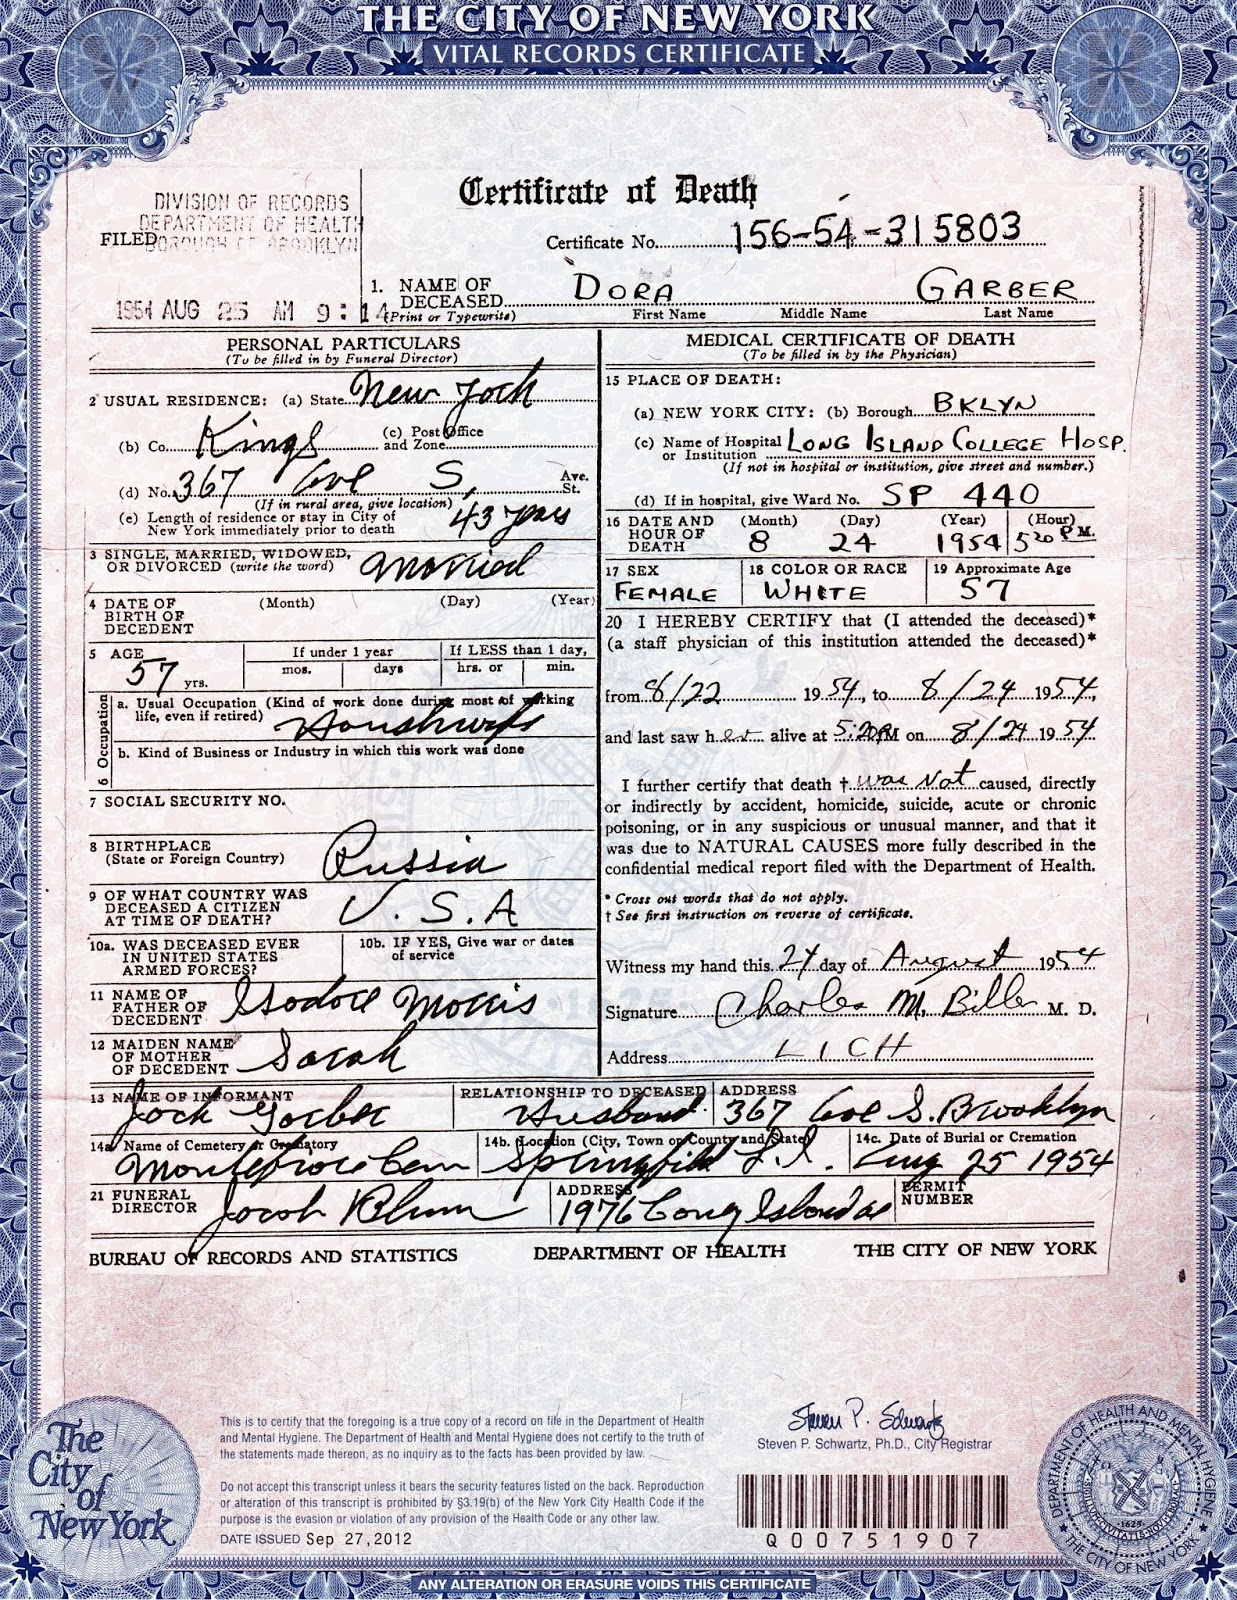 Where to get birth certificate in los angeles best design los angeles county birth certificate get vital record aiddatafo Image collections